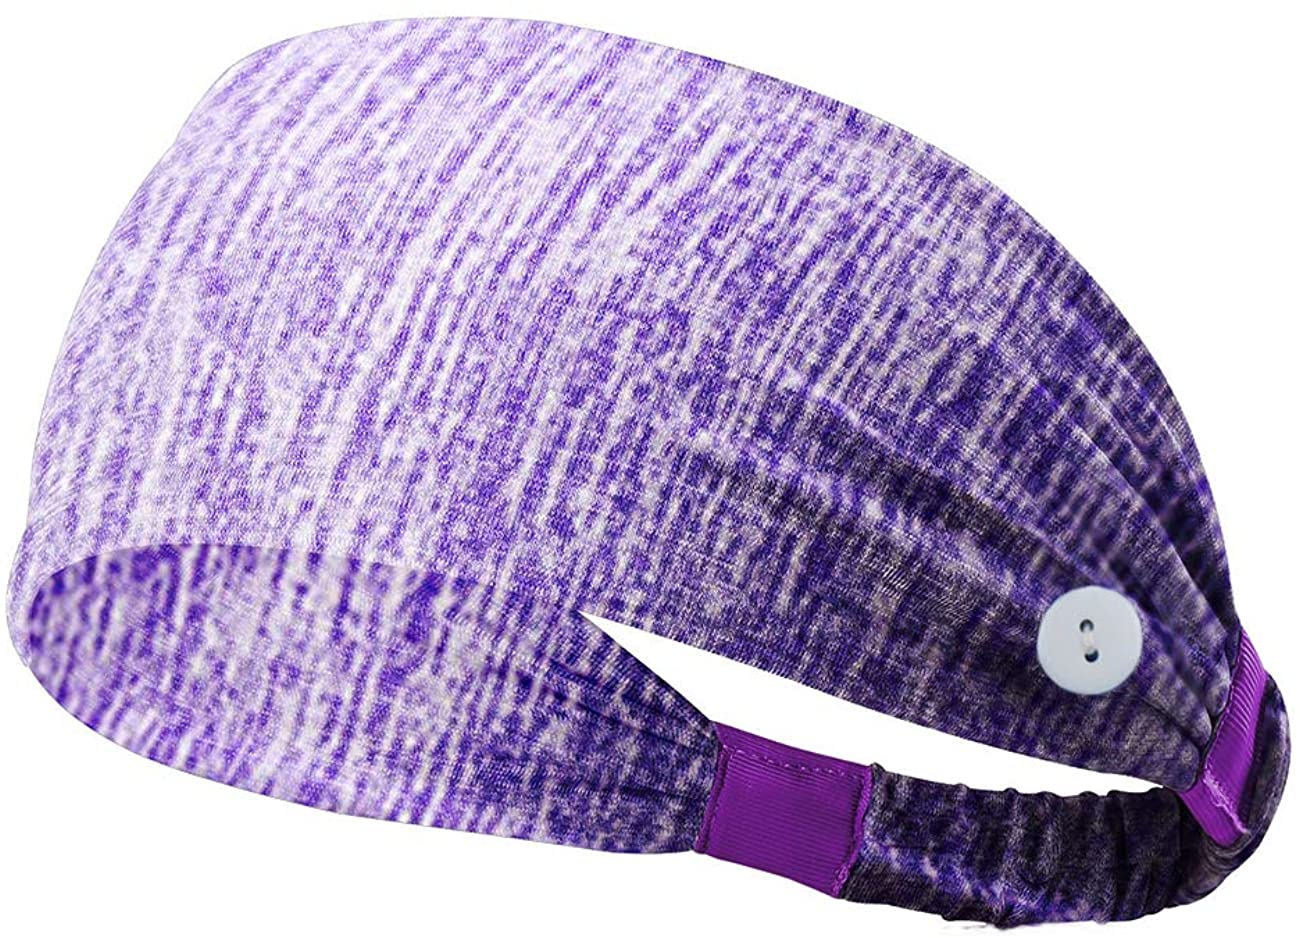 Ecosunny Button Headband for Facemask Mask Holder Headwrap for Nurses Doctors, Non Slip Sports Sweatbands Protect Ears